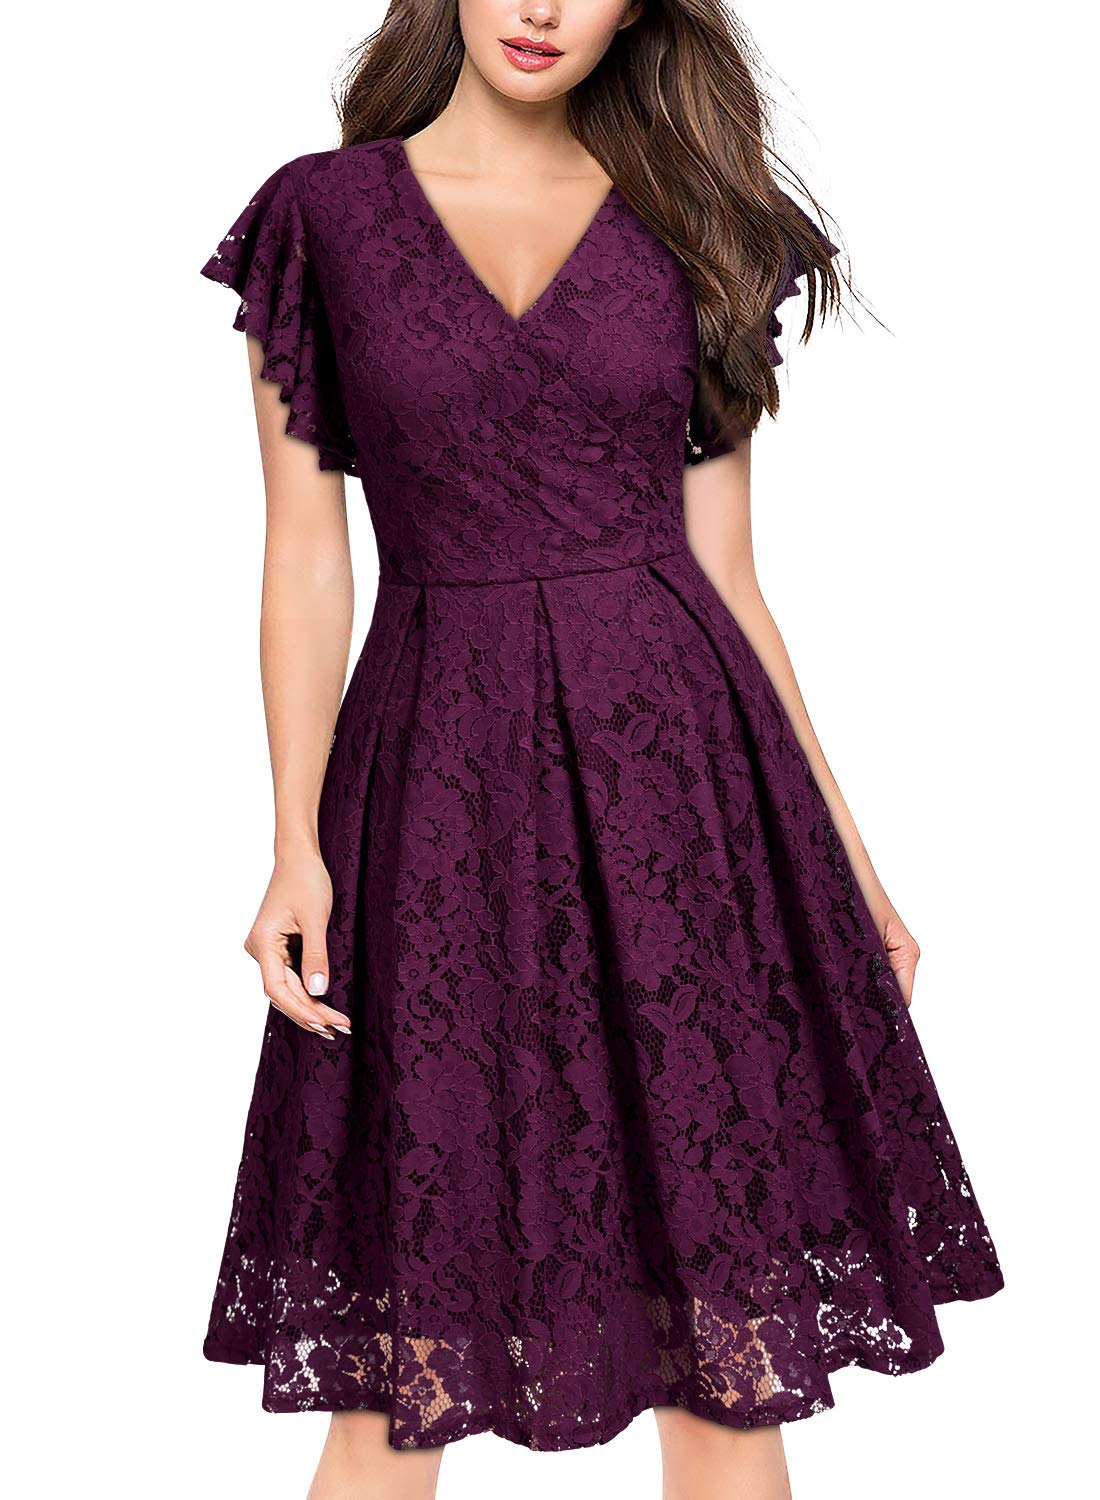 5cac6c8ac711 MISSMAY Women's Vintage Floral Lace Ruffle V Neck Cocktail Party Swing Dress  Small Magenta